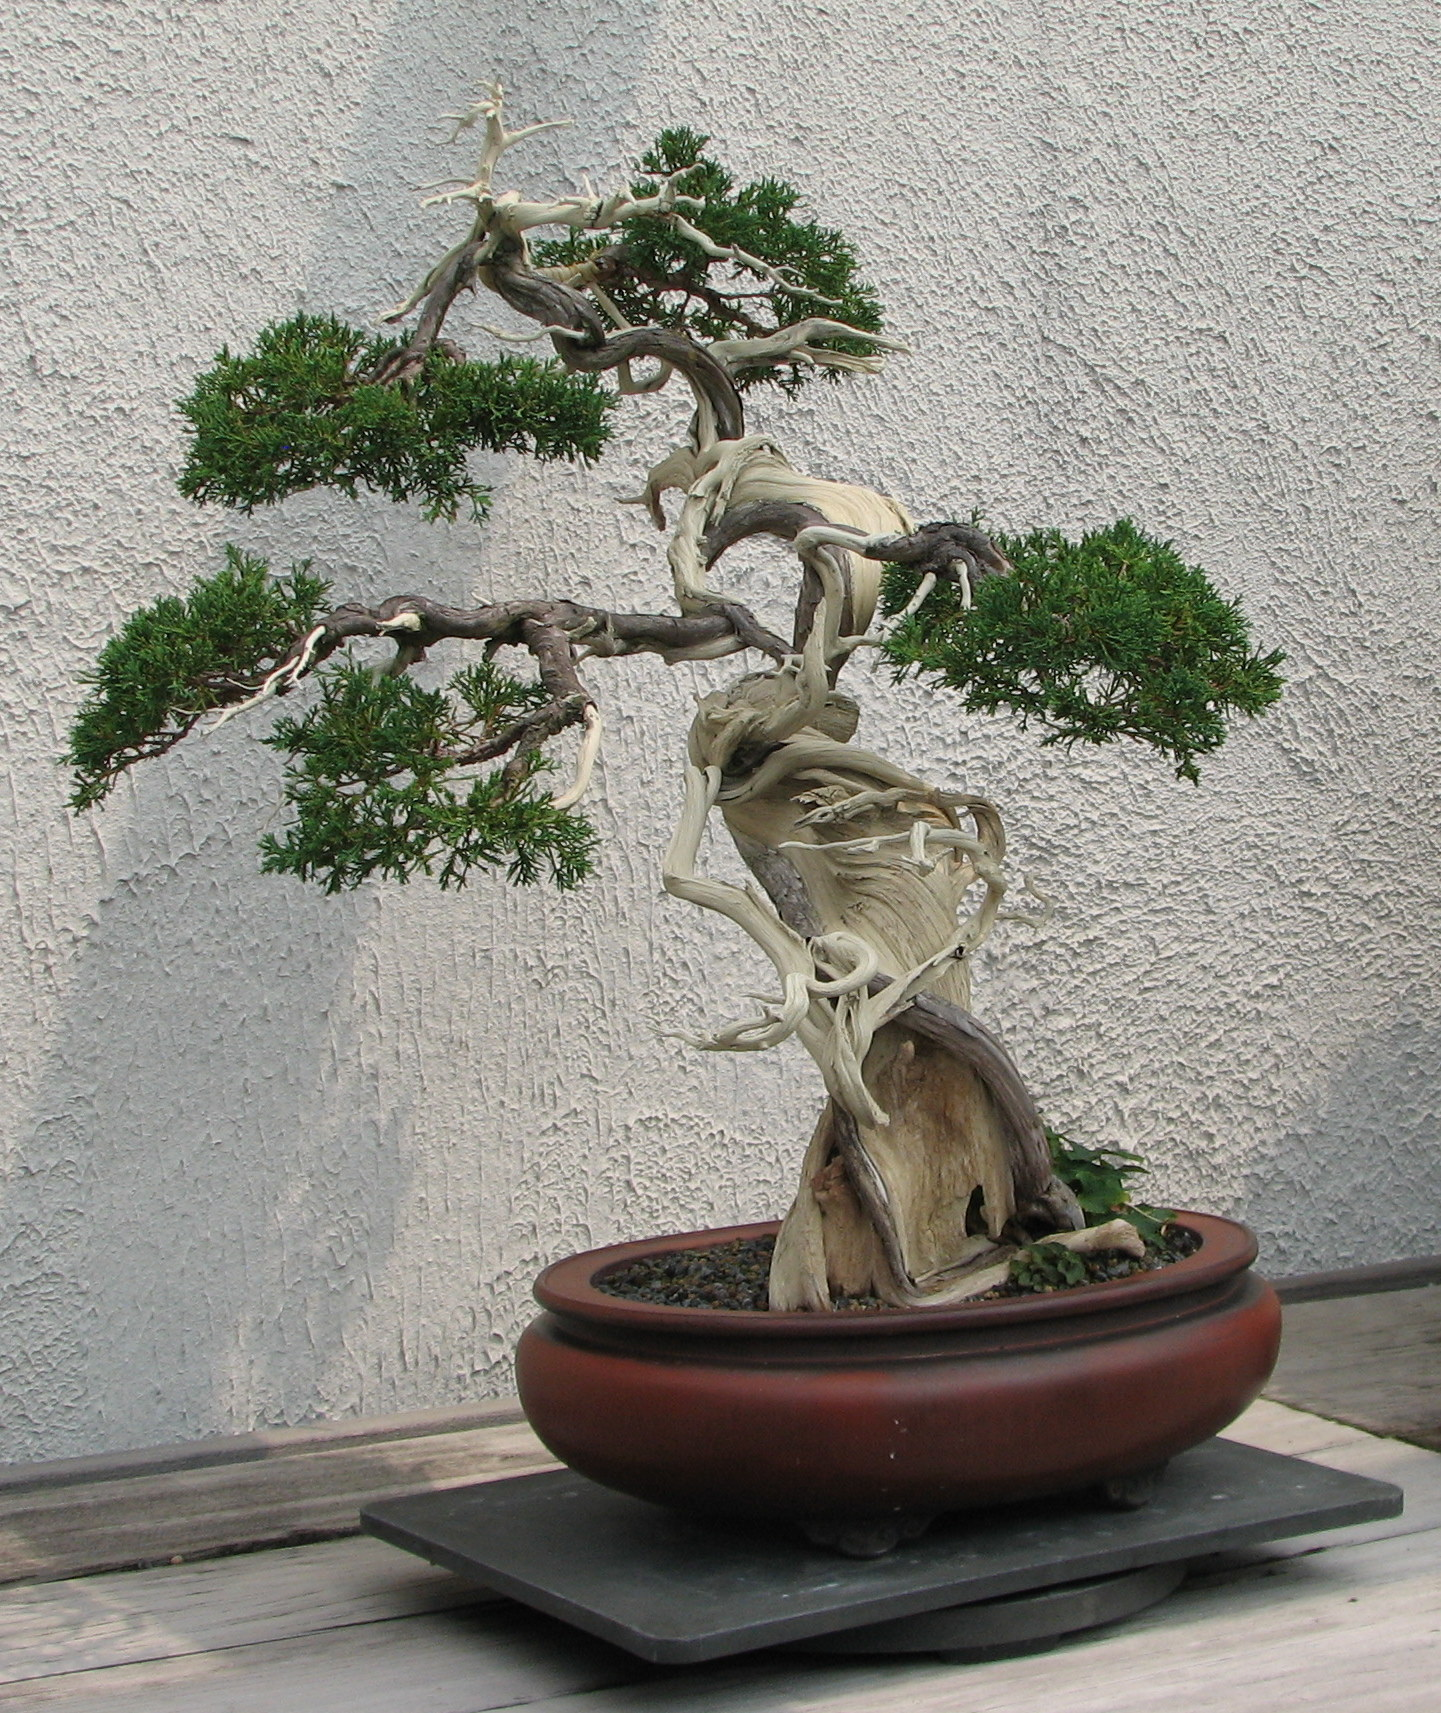 """Sargent Juniper, 1905-2007"" by Ragesoss - Own work. Licensed under CC BY-SA 3.0 via Wikimedia Commons"